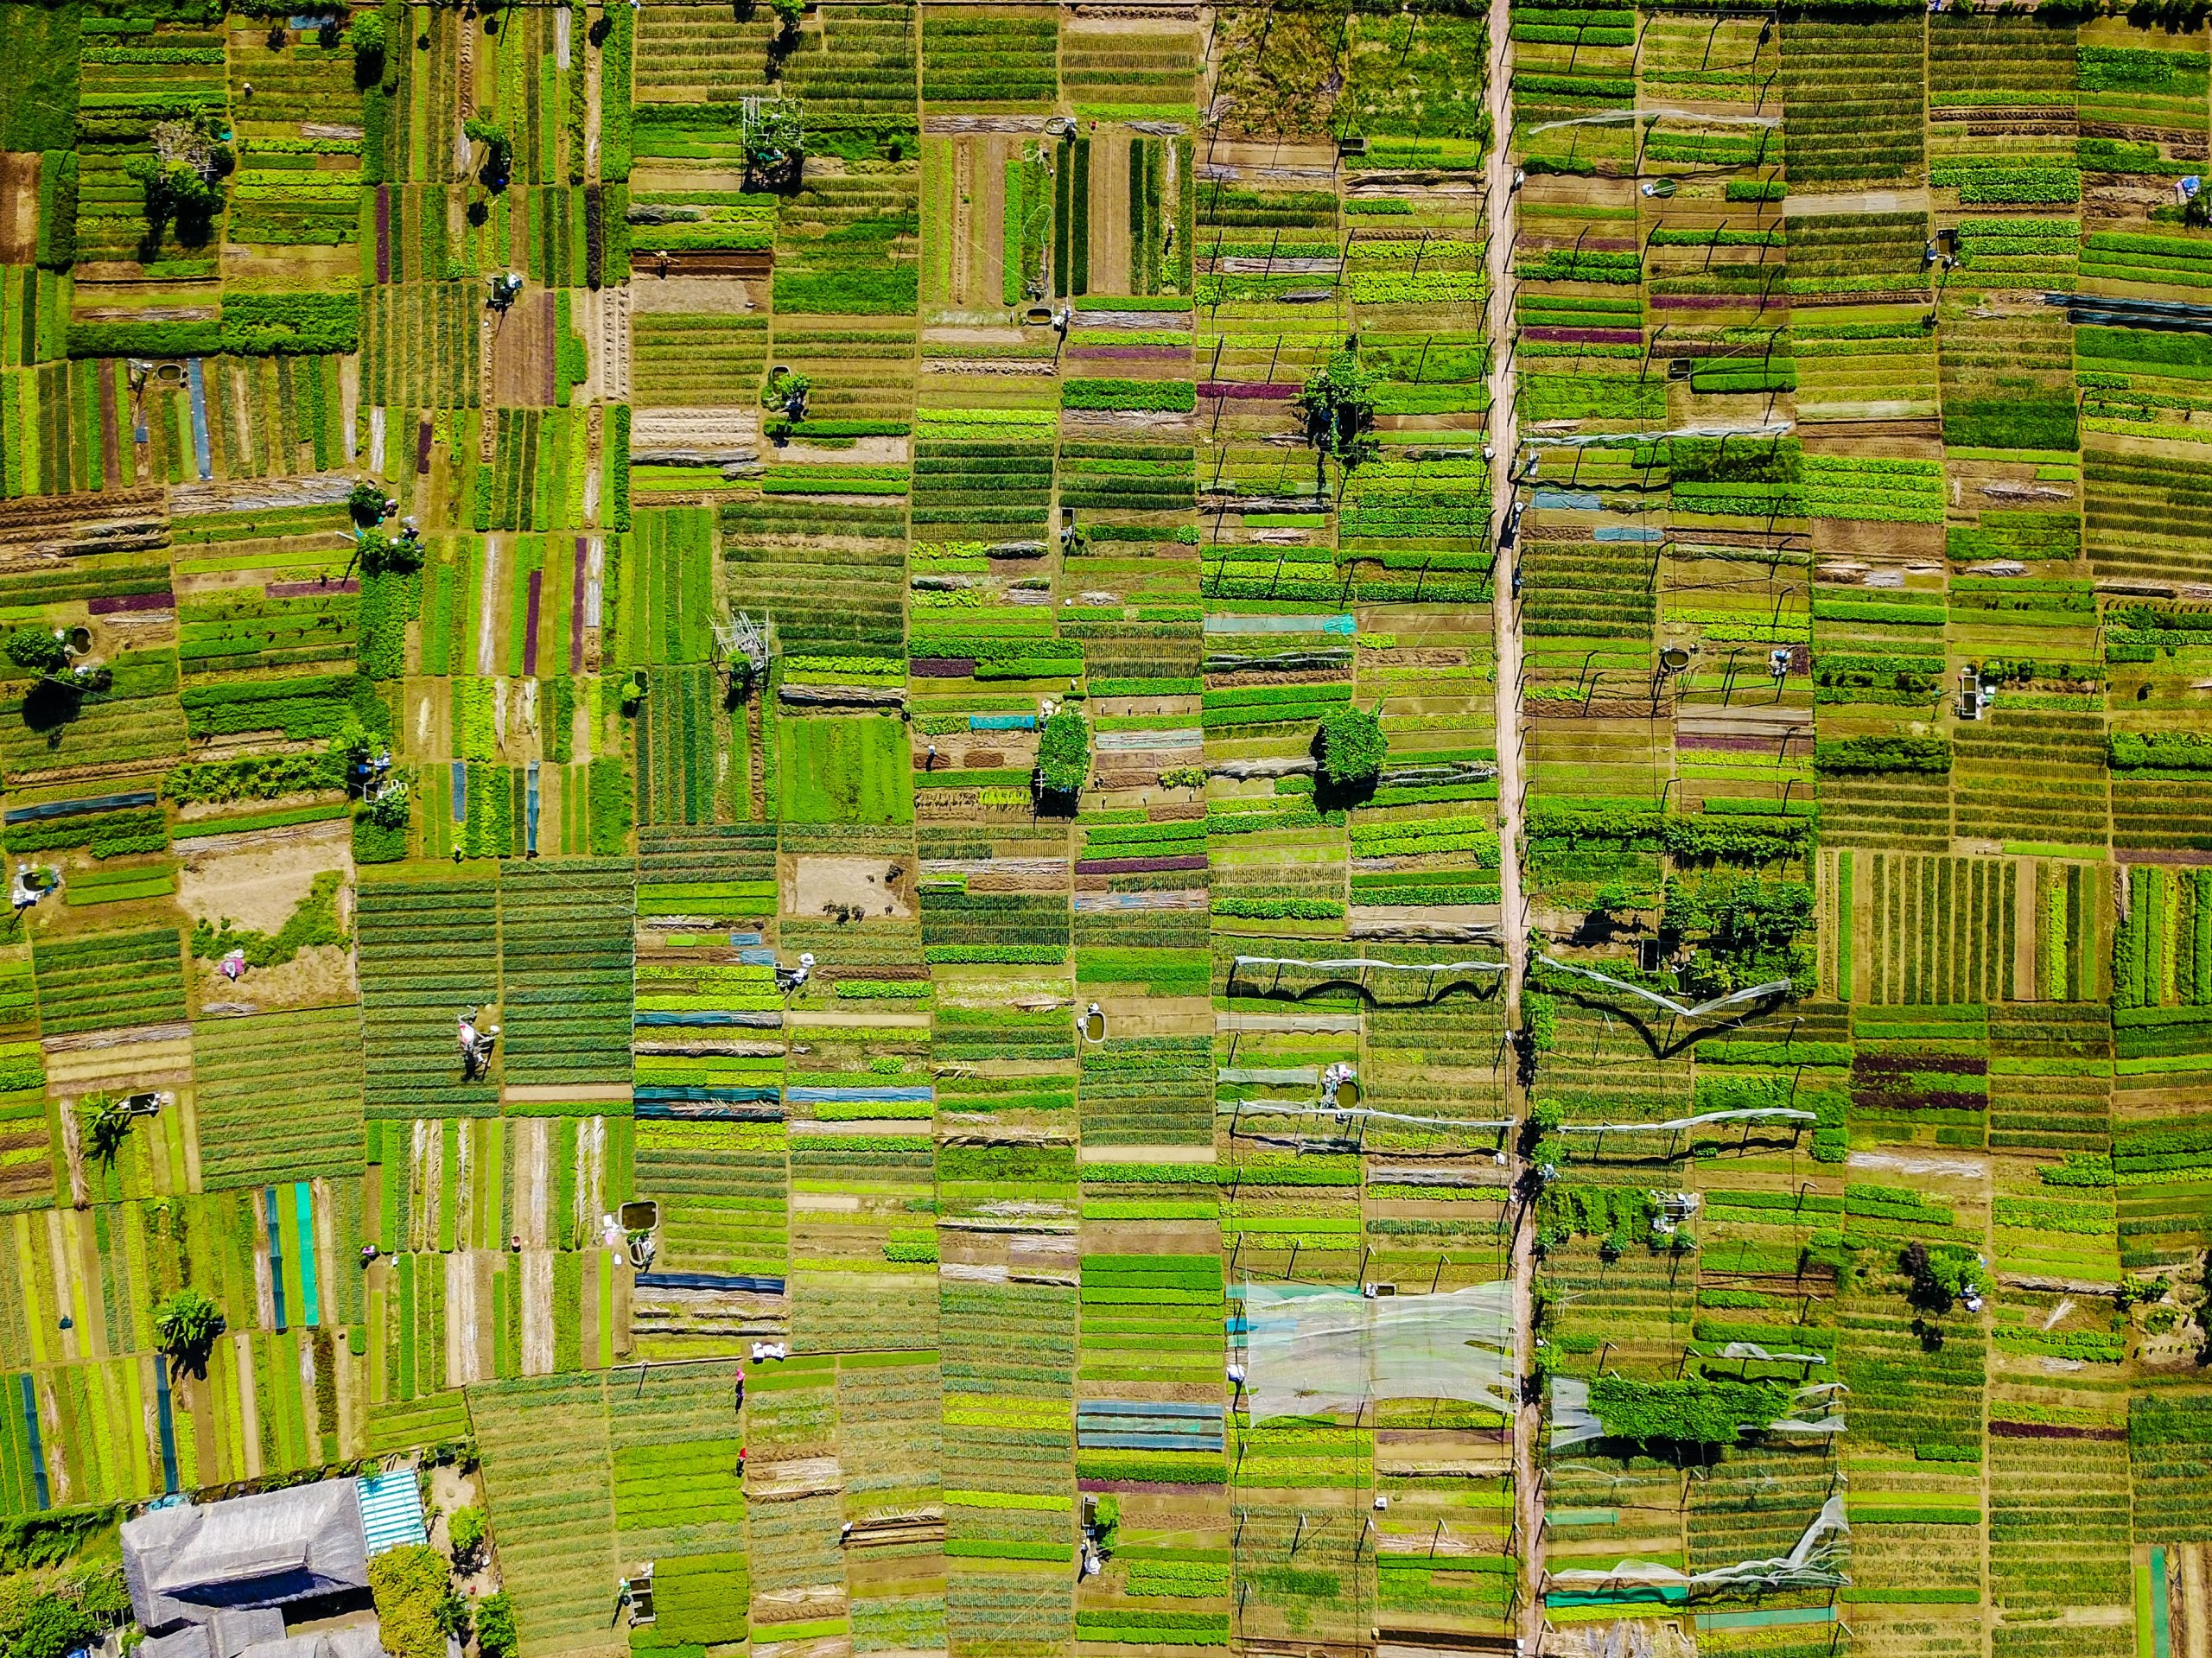 Aerial photograph of farm land creating a geometric grid of green rectangles